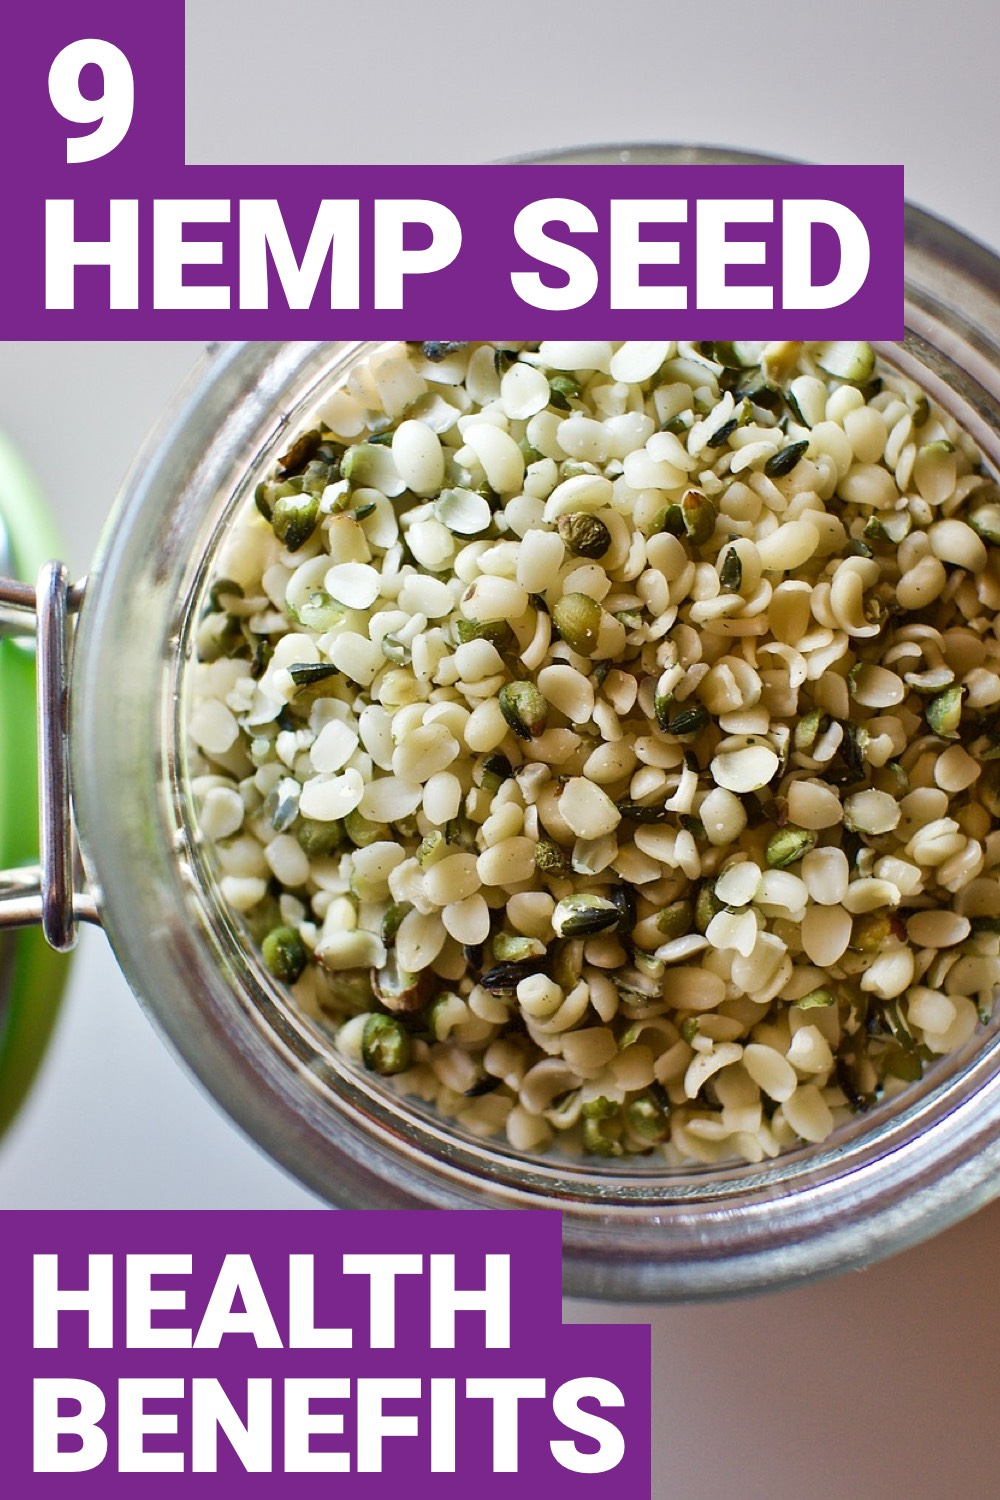 The hemp seed is something you should use as part of your diet. Here are 9 hemp seed benefits that you should know about.